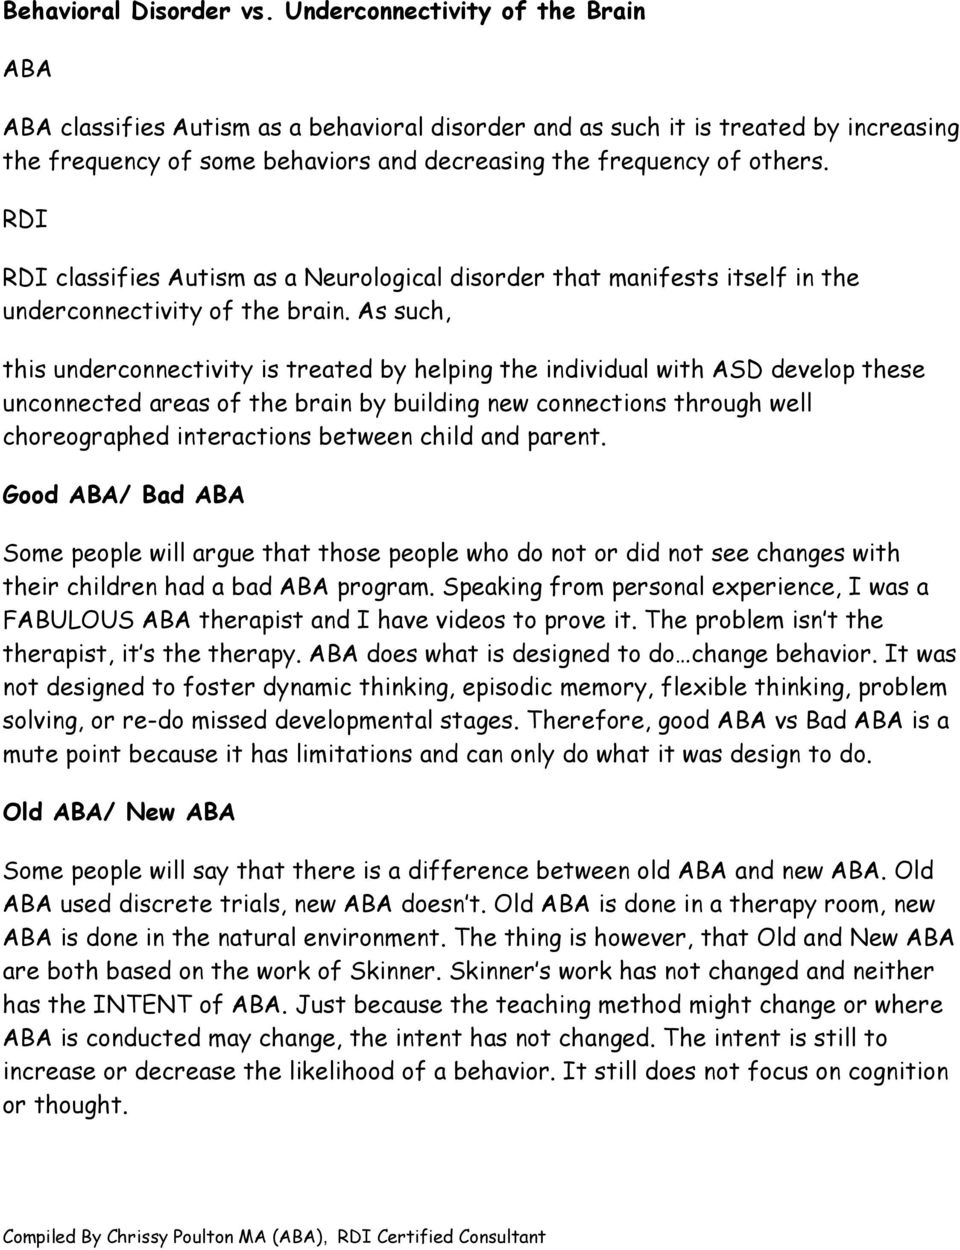 ABA AND RDI  Therapy vs  RDI Life Style ABA - PDF